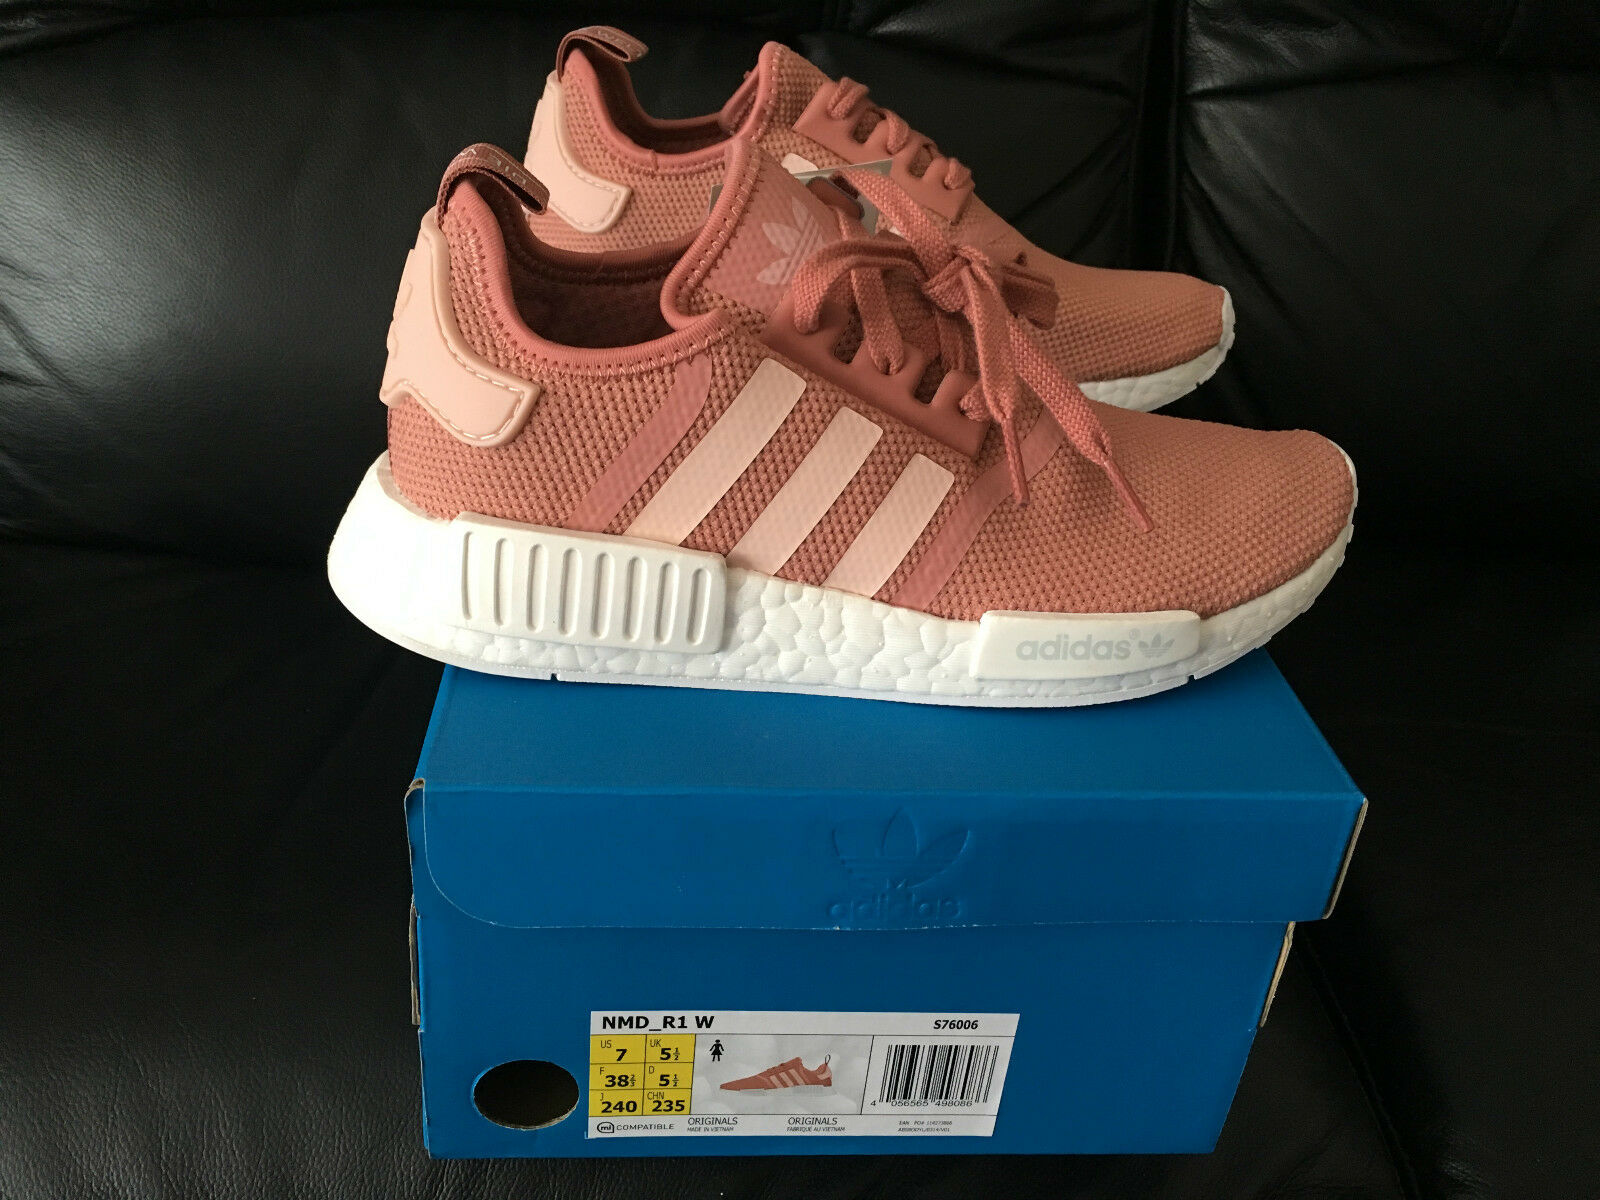 ADIDAS NMD R1 RUNNER RAW VAPOUR PINK MESH ALL UK SIZES 4 4.5 5 5.5 6 6.5 7 8 NEW